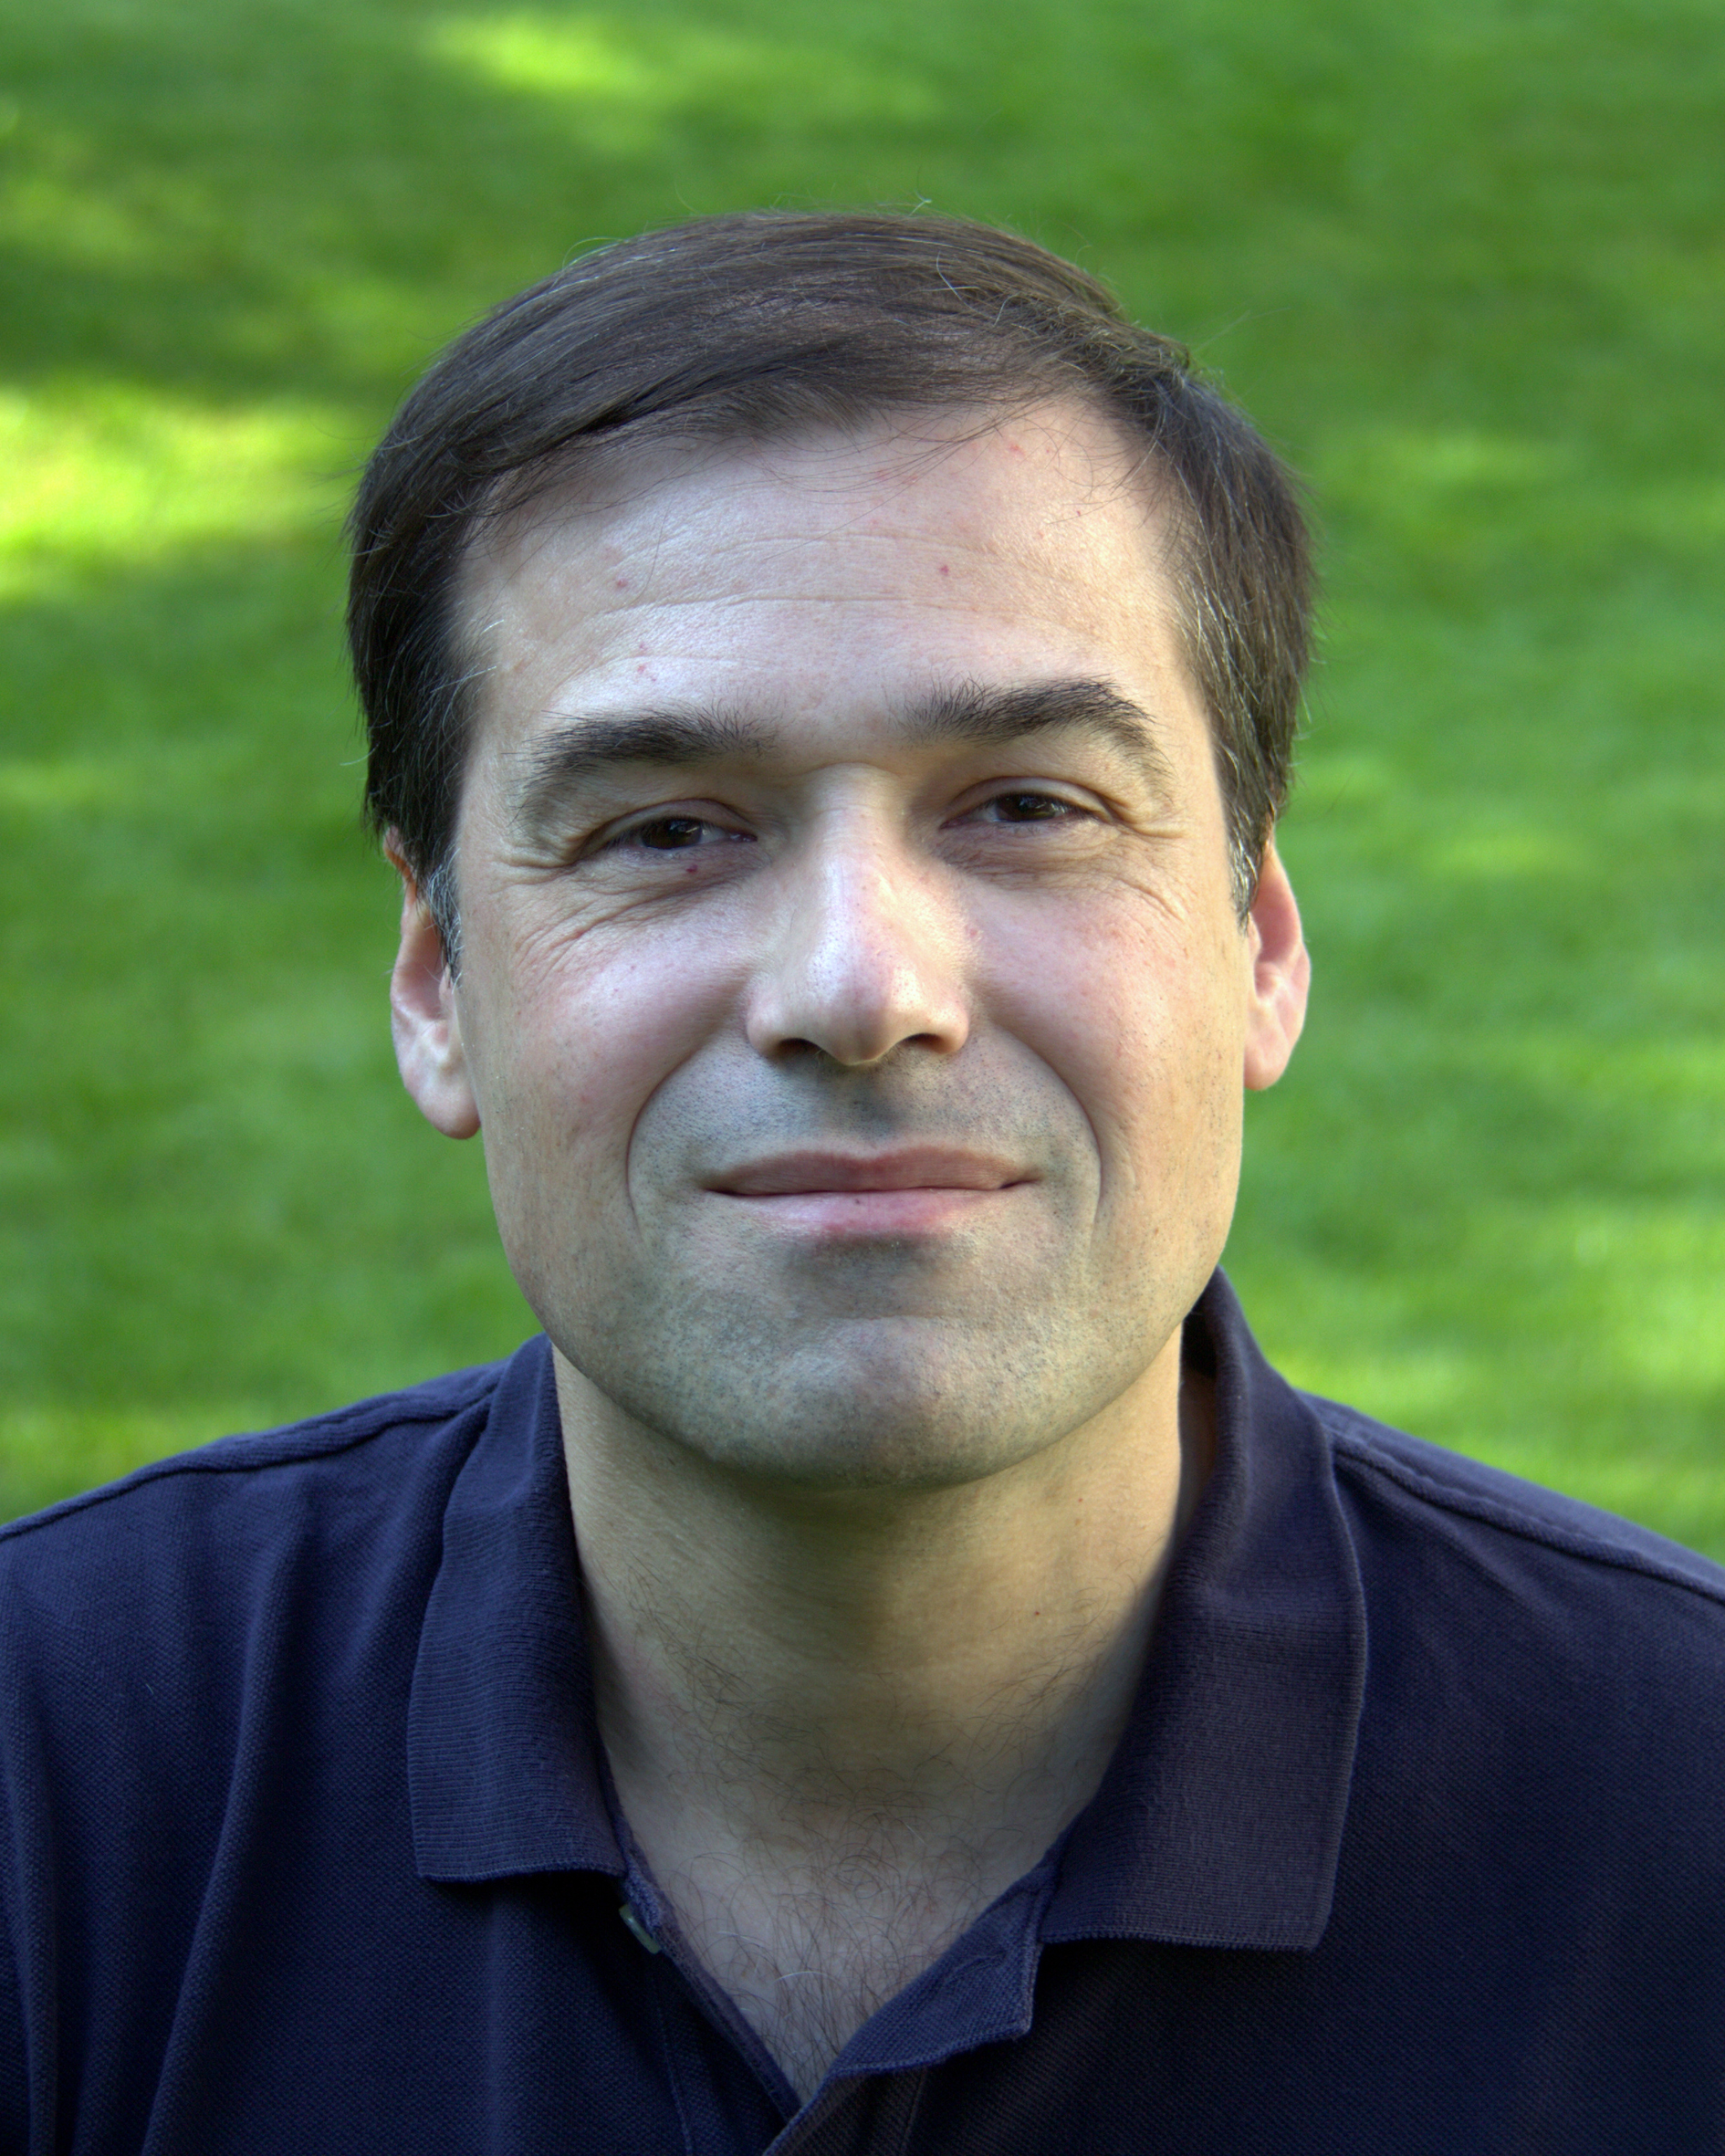 Photo of Jochen Stutz, Ph.D.